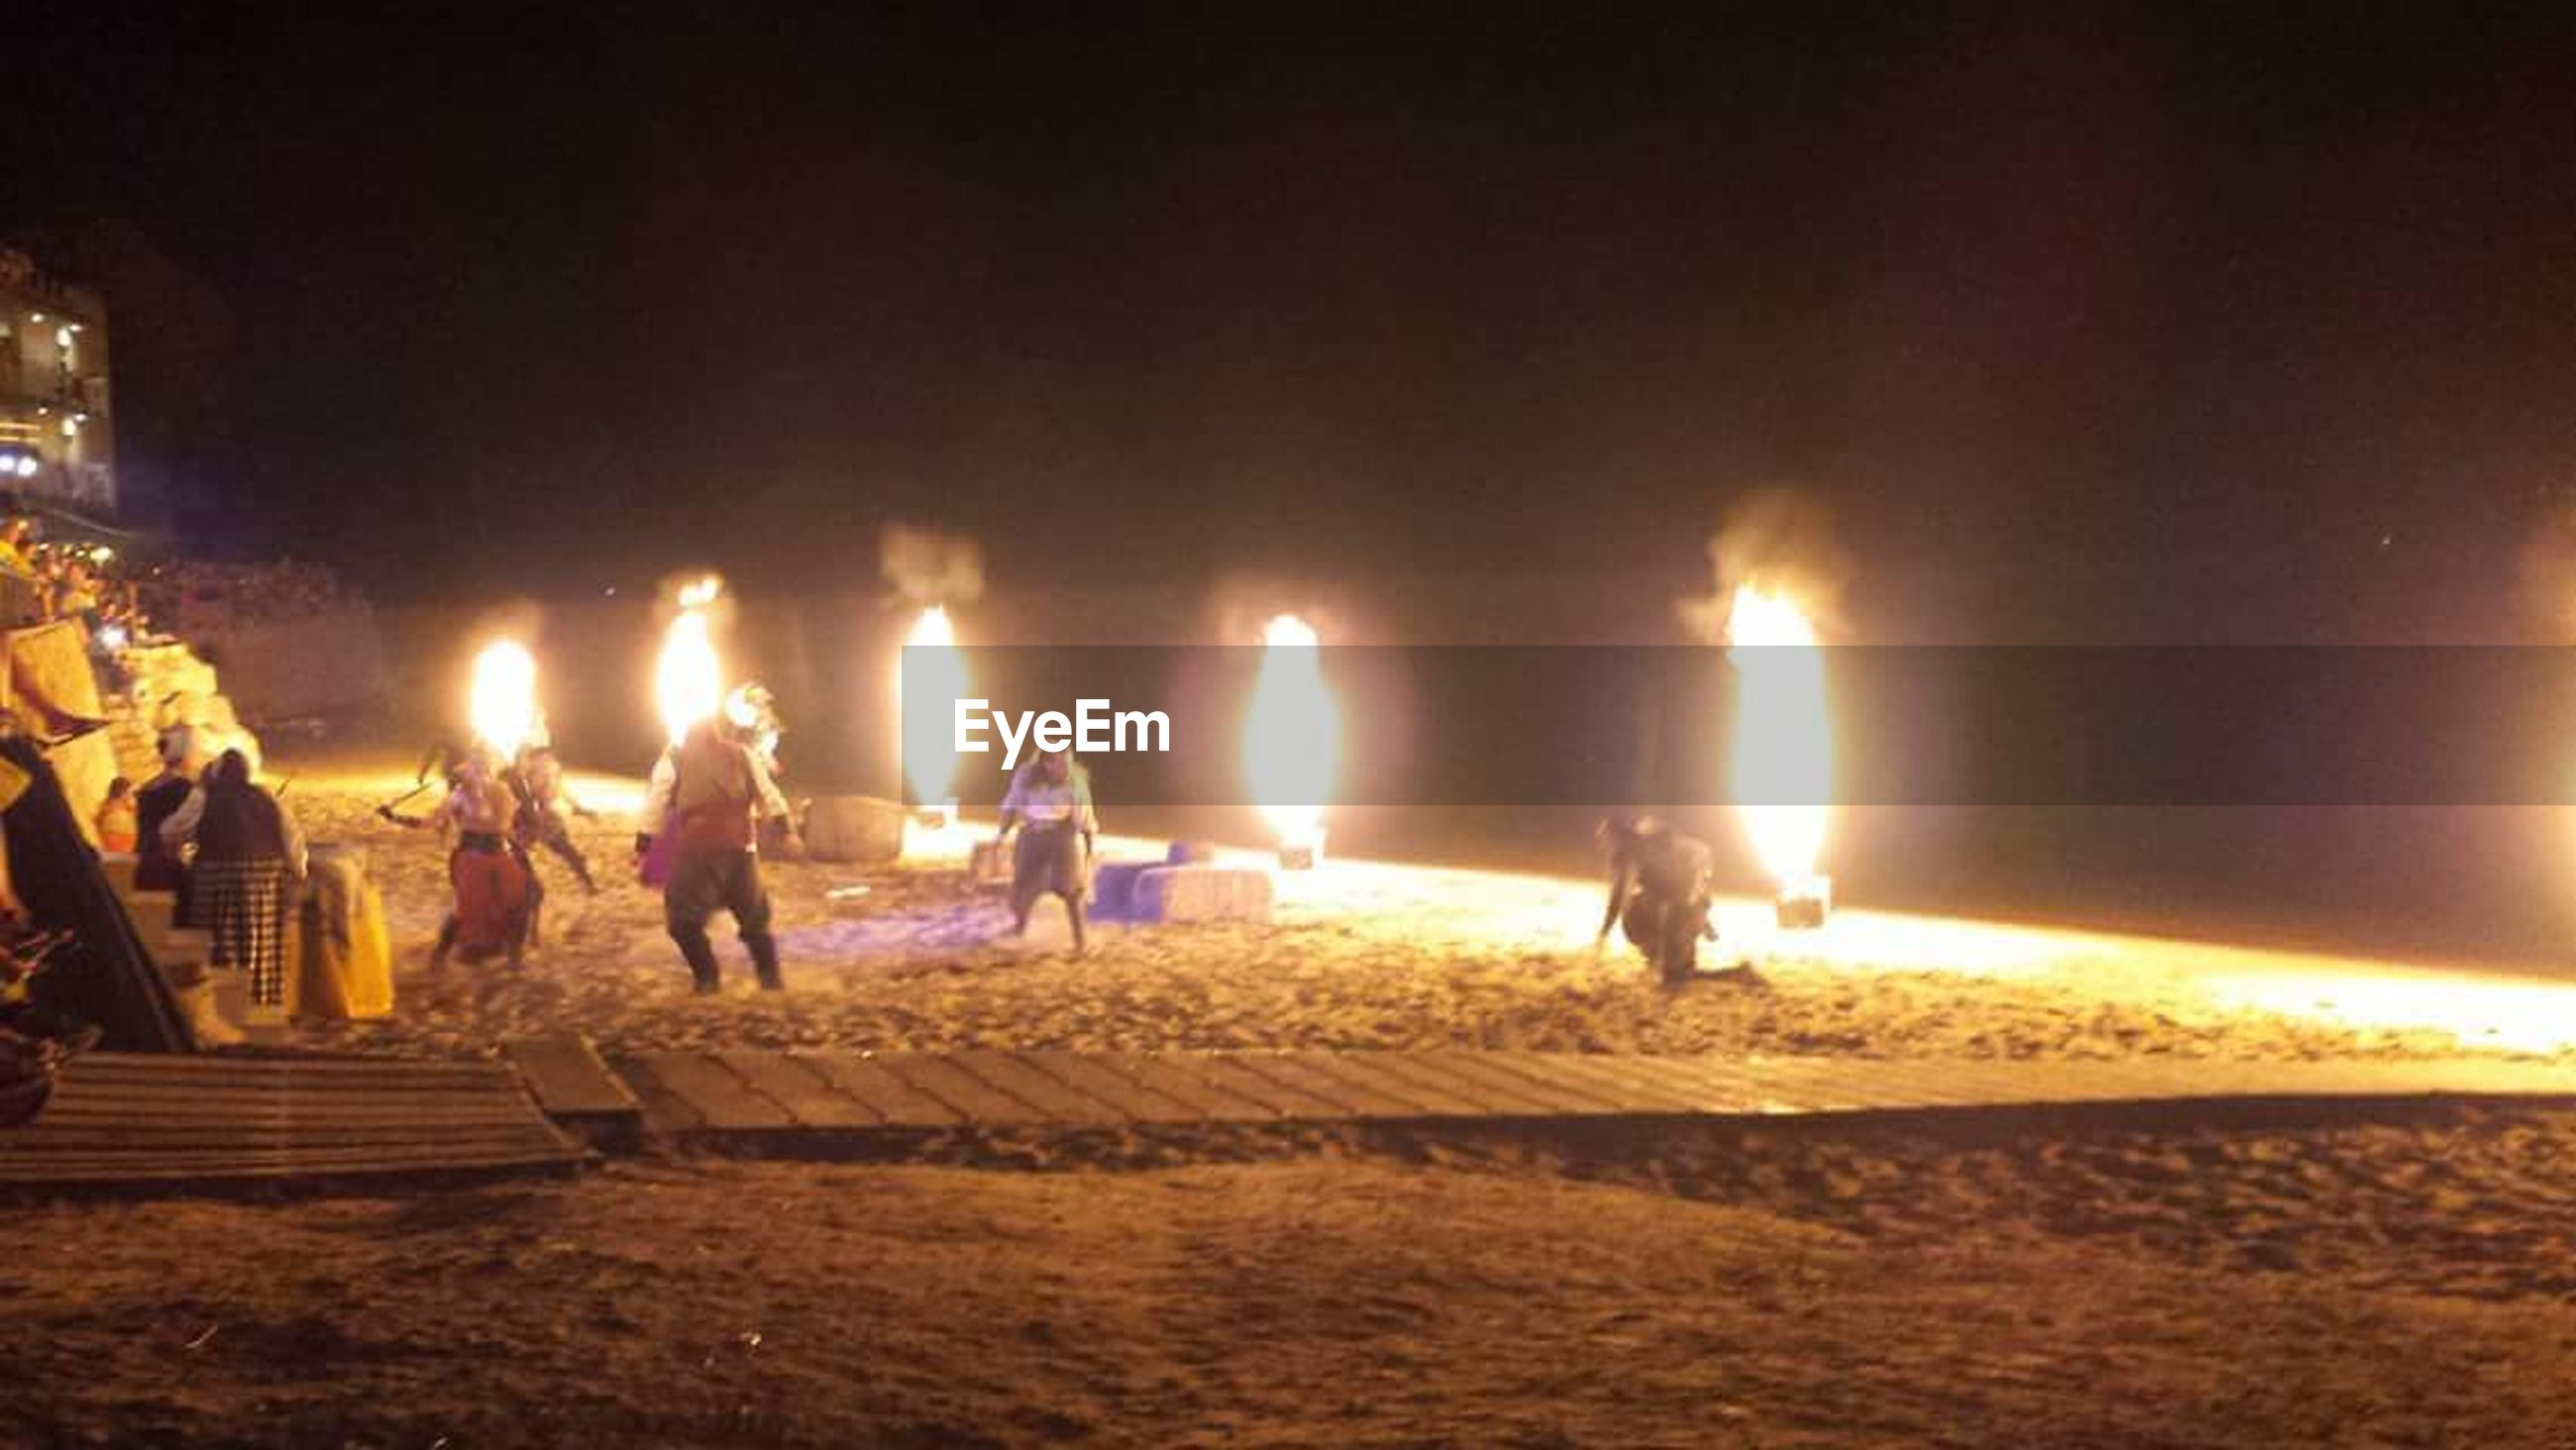 flame, night, beach, lifestyles, heat - temperature, togetherness, men, illuminated, outdoors, burning, sand, adult, people, ceremony, large group of people, only men, adults only